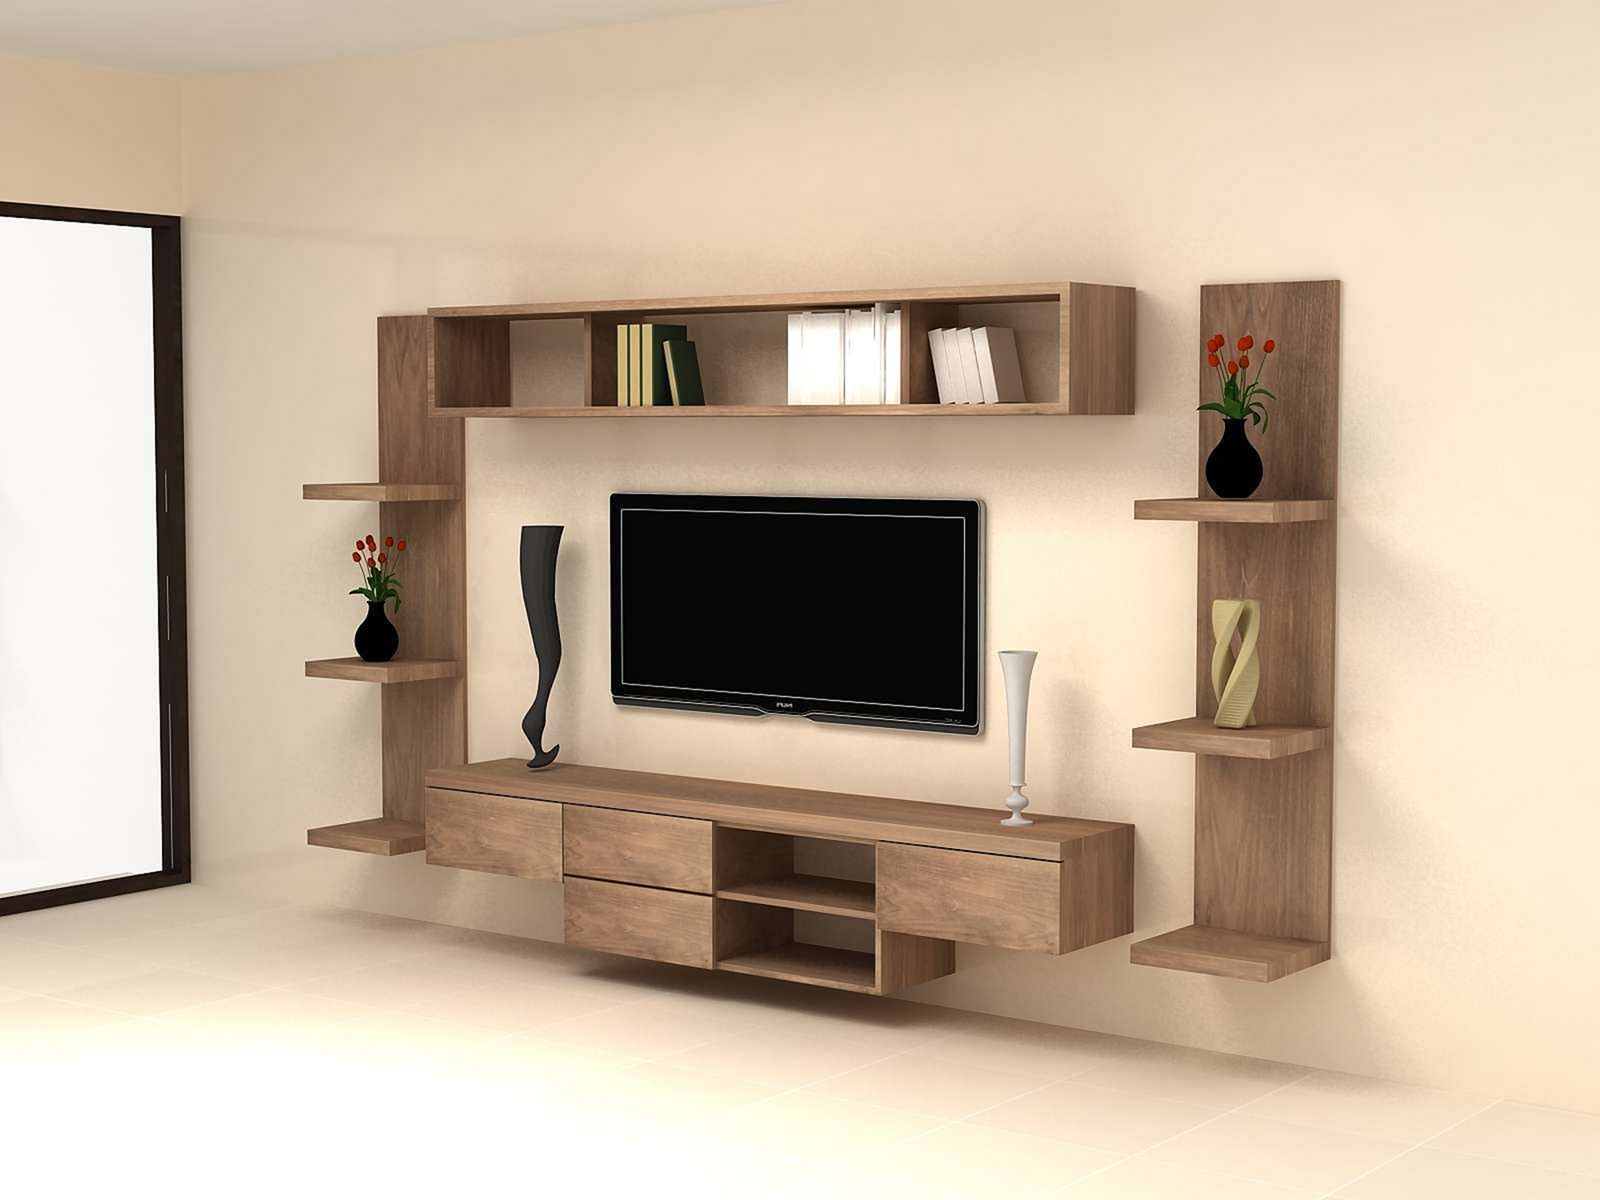 49 Affordable Wooden Tv Stands Design Ideas With Storage Modern Tv Wall Units Contemporary Tv Units Tv Cabinet Design